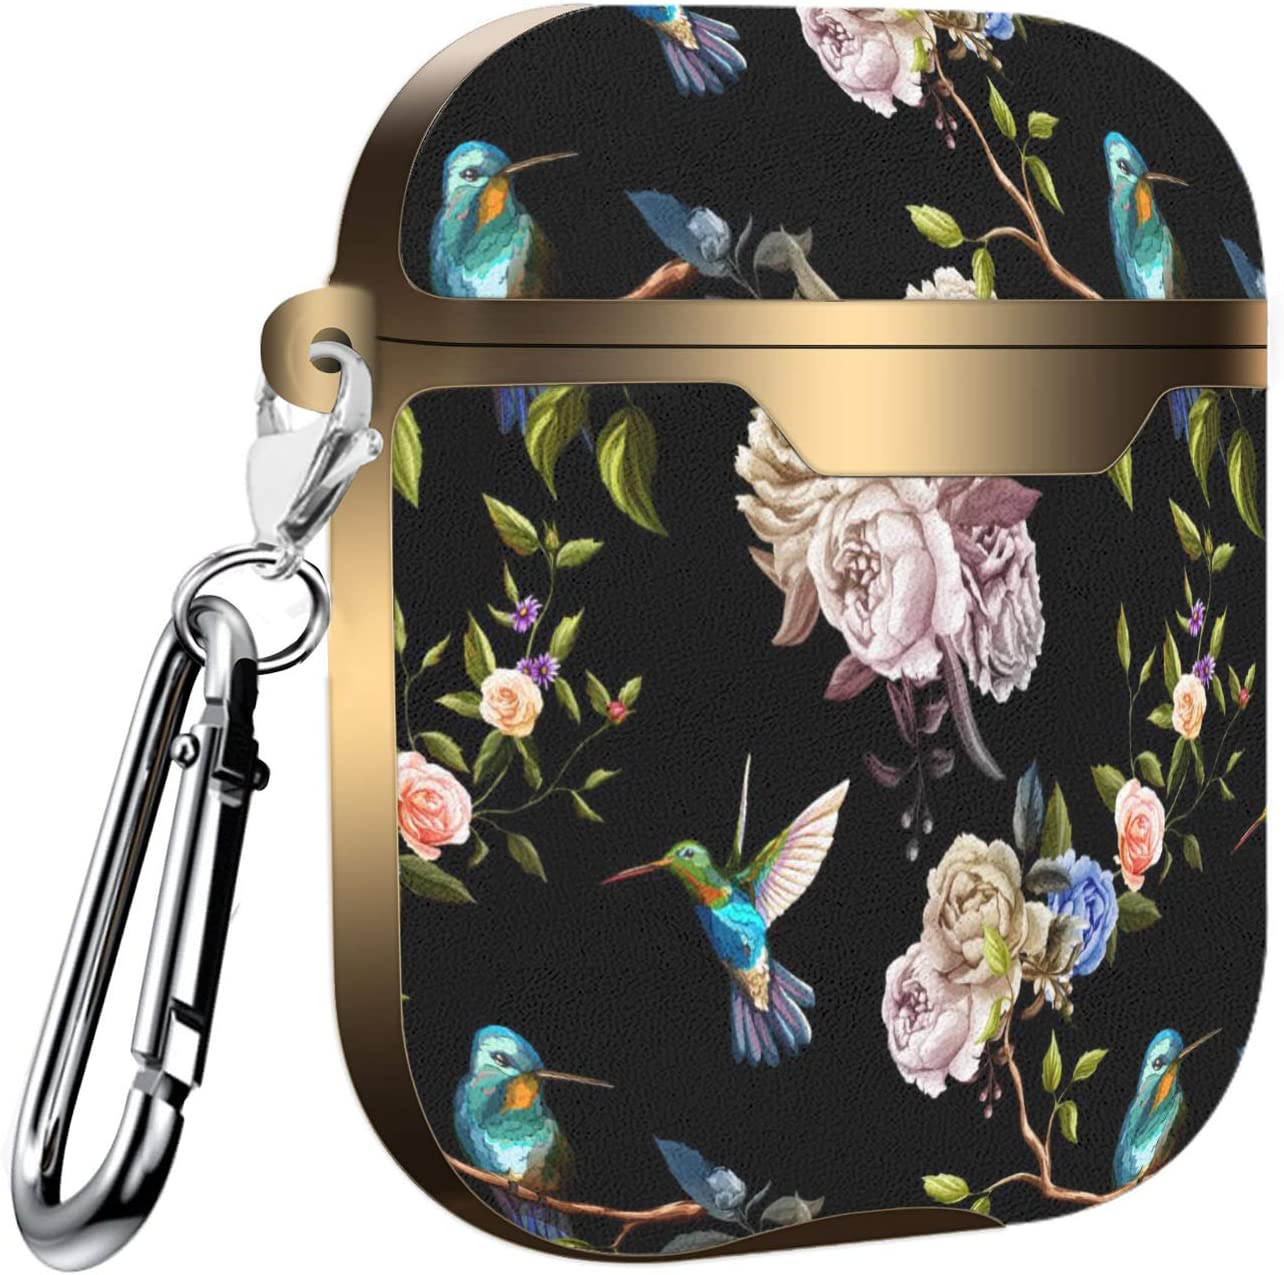 Hummingbird On Floral Background Slim Form Fitted Printing Pattern Cover Case with Carabiner Compatible with Airpods 1 and AirPods 2